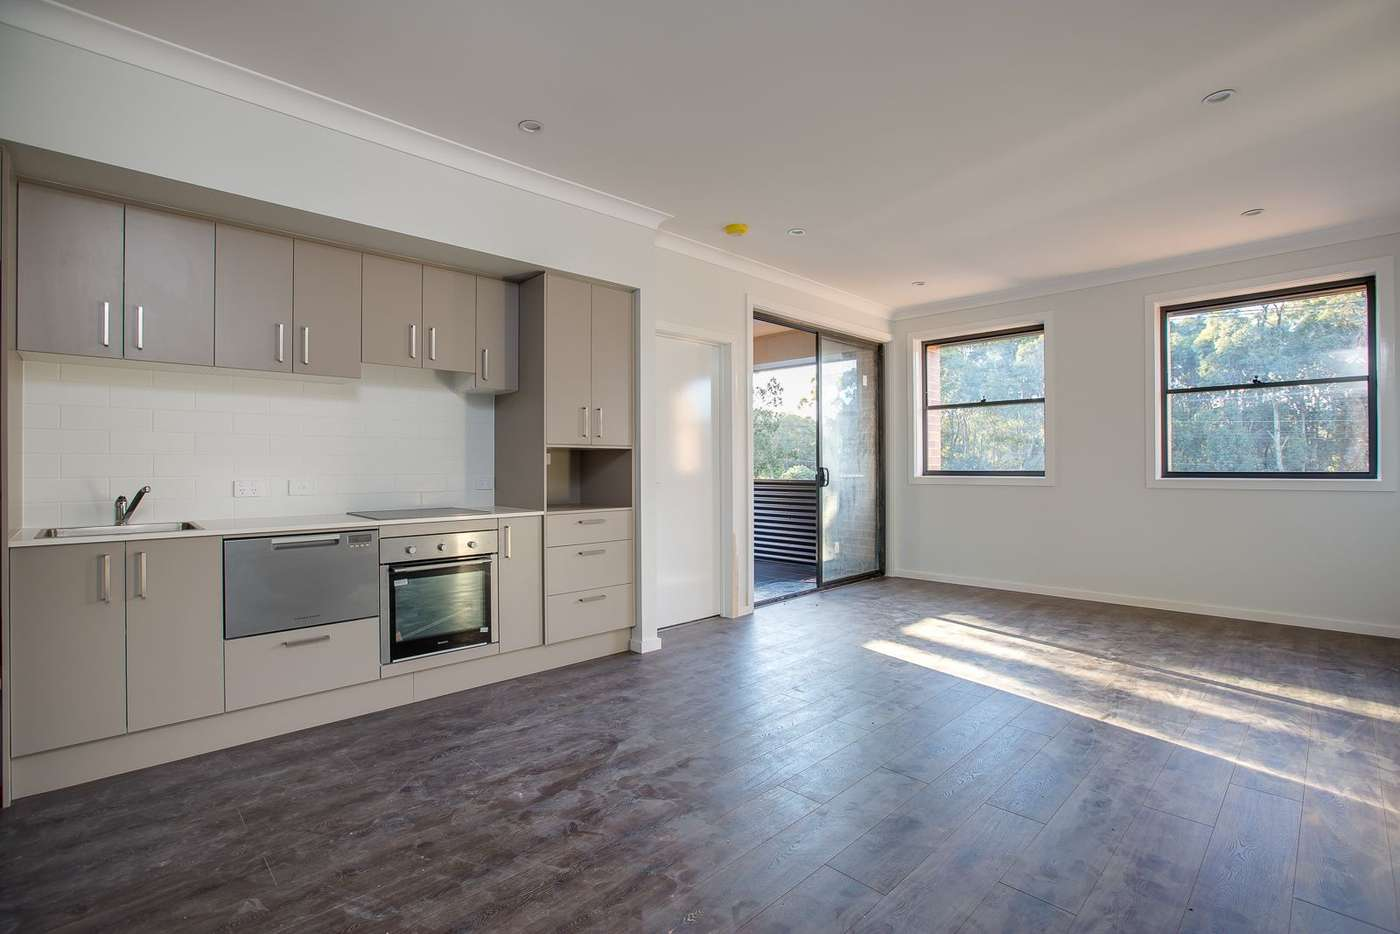 Main view of Homely apartment listing, 79 University Drive, North Lambton, NSW 2299